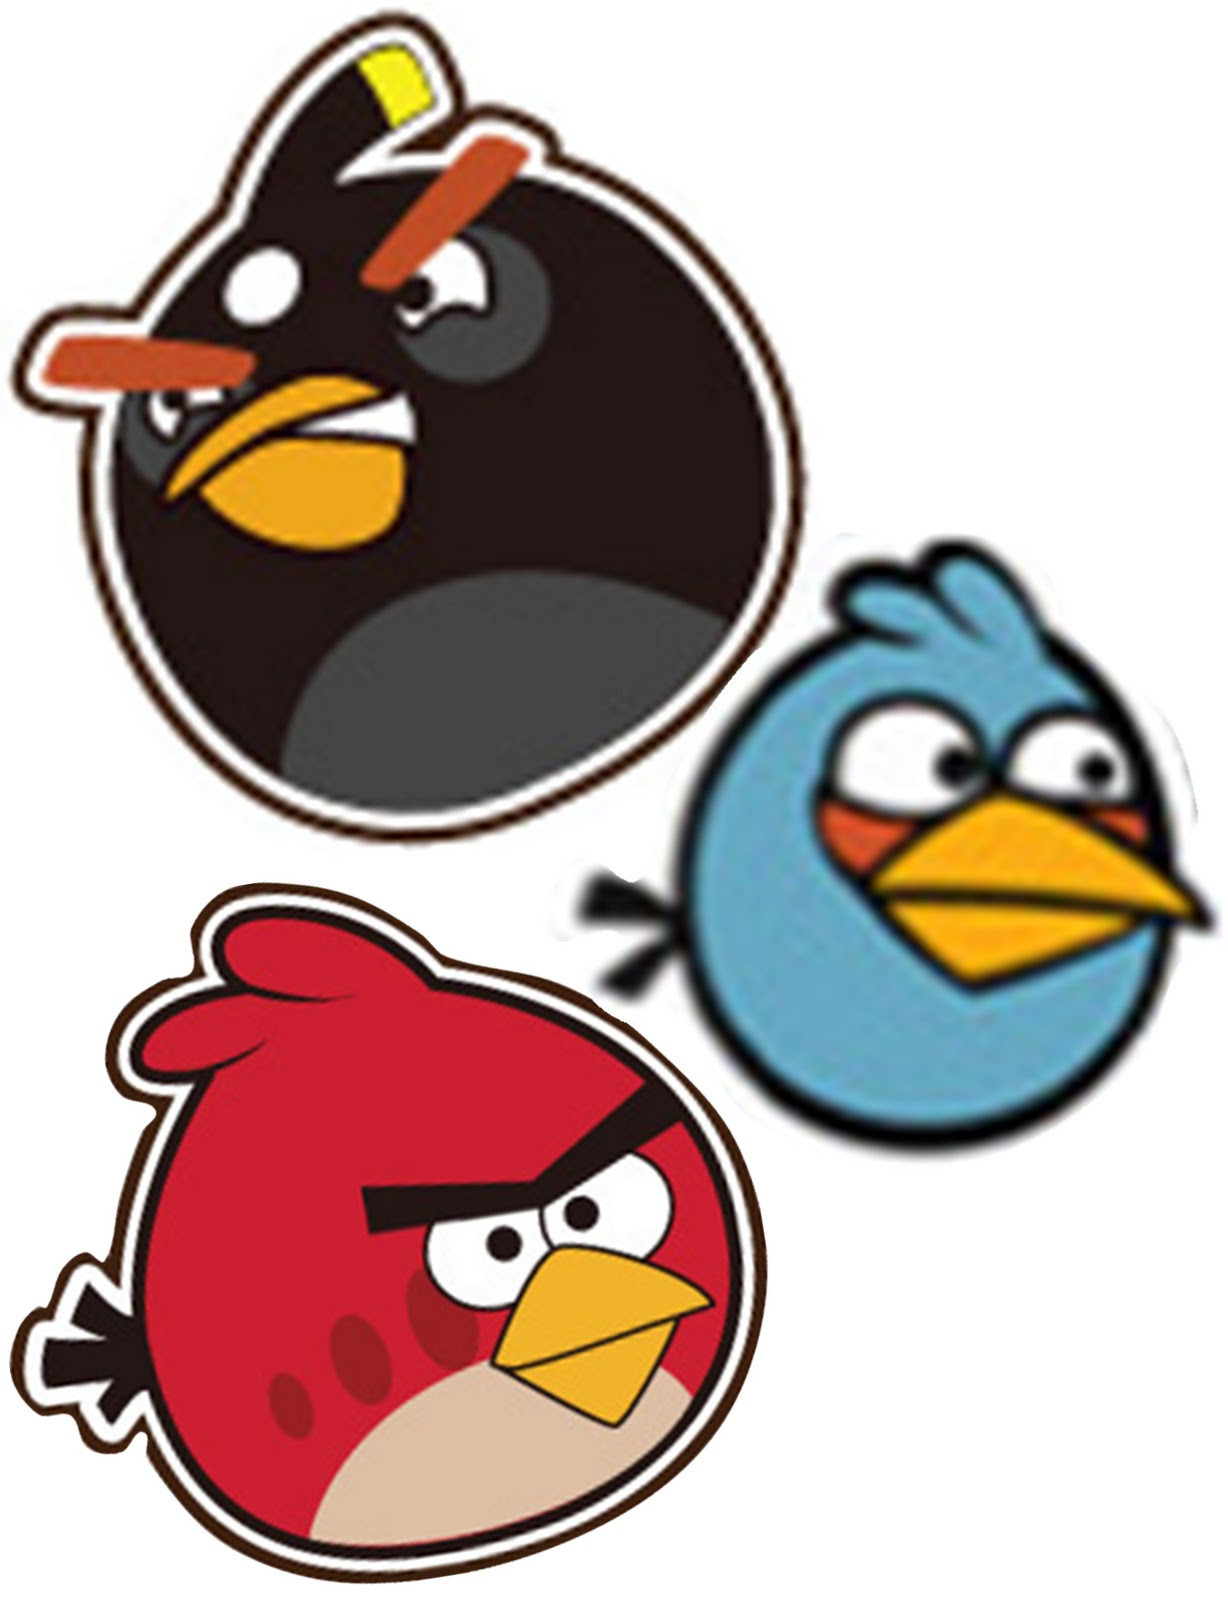 The Sew Er The Caker The Copycat Maker Angry Bird